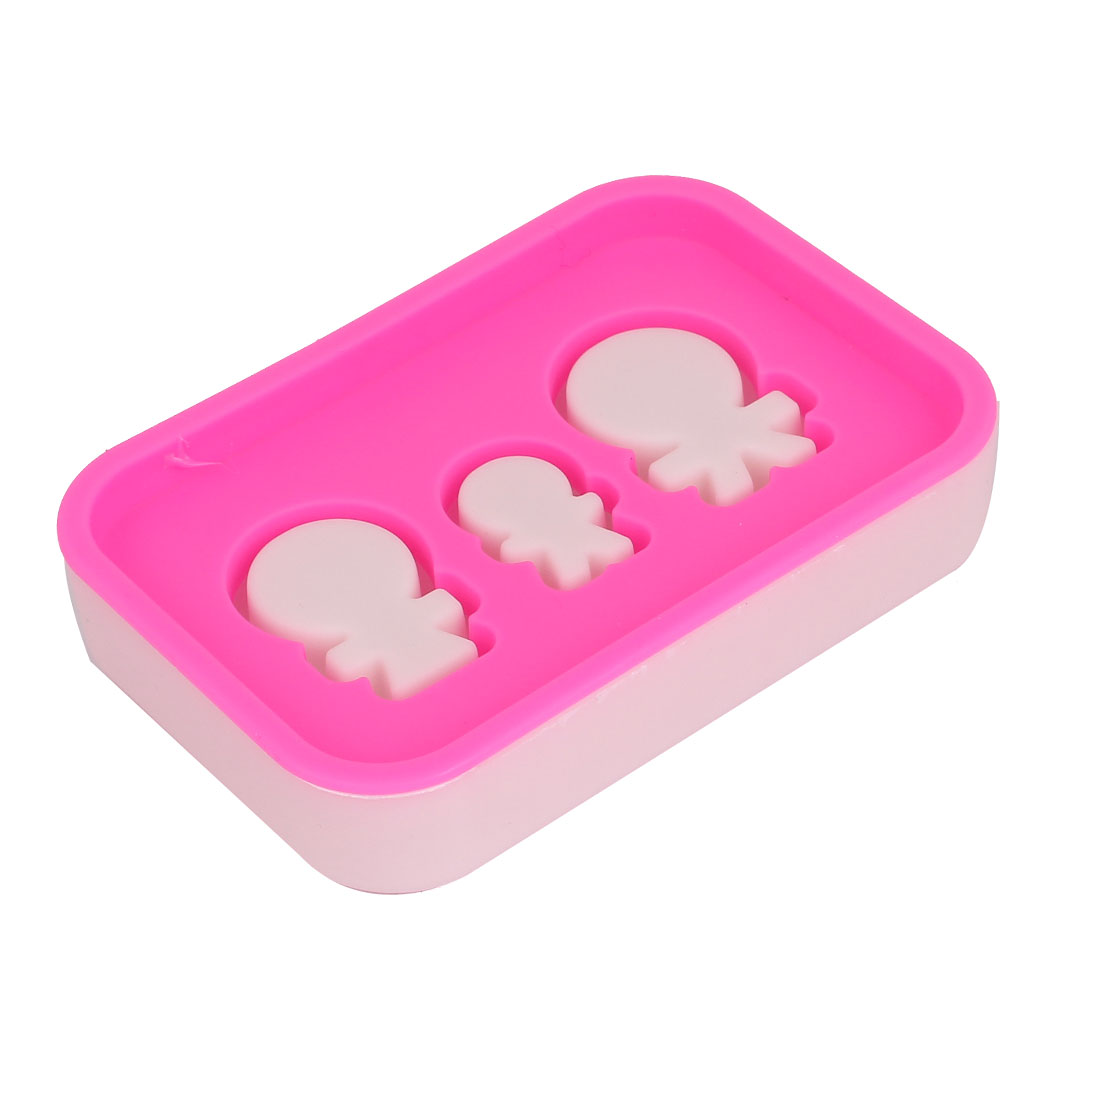 Travel Plastic Double Layer Soap Dish Container Holder Box Case White Fuchsia